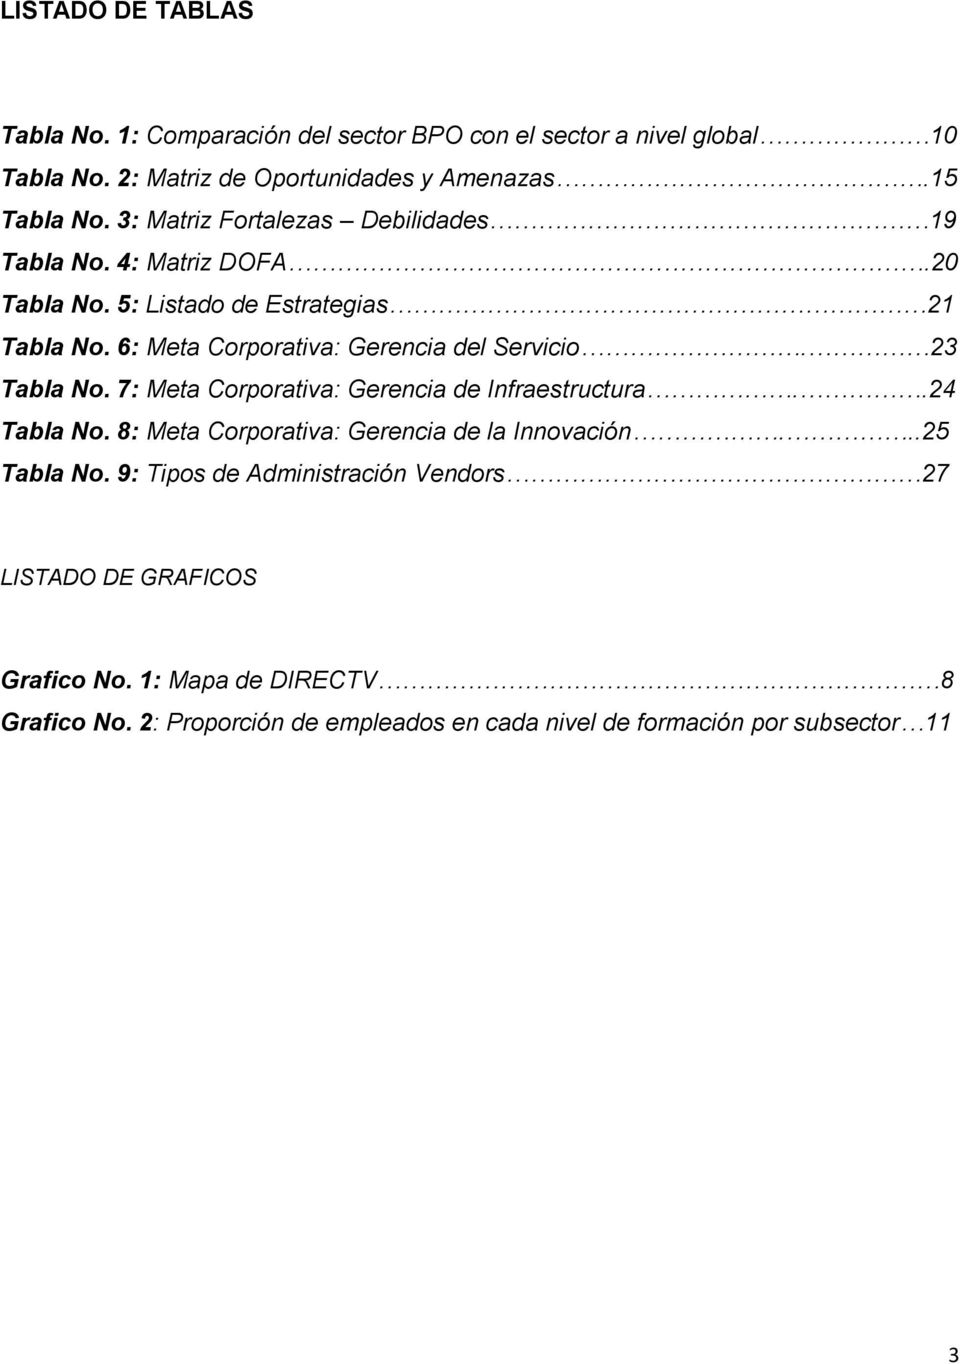 23 Tabla No. 7: Meta Corporativa: Gerencia de Infraestructura..24 Tabla No. 8: Meta Corporativa: Gerencia de la Innovación...25 Tabla No.